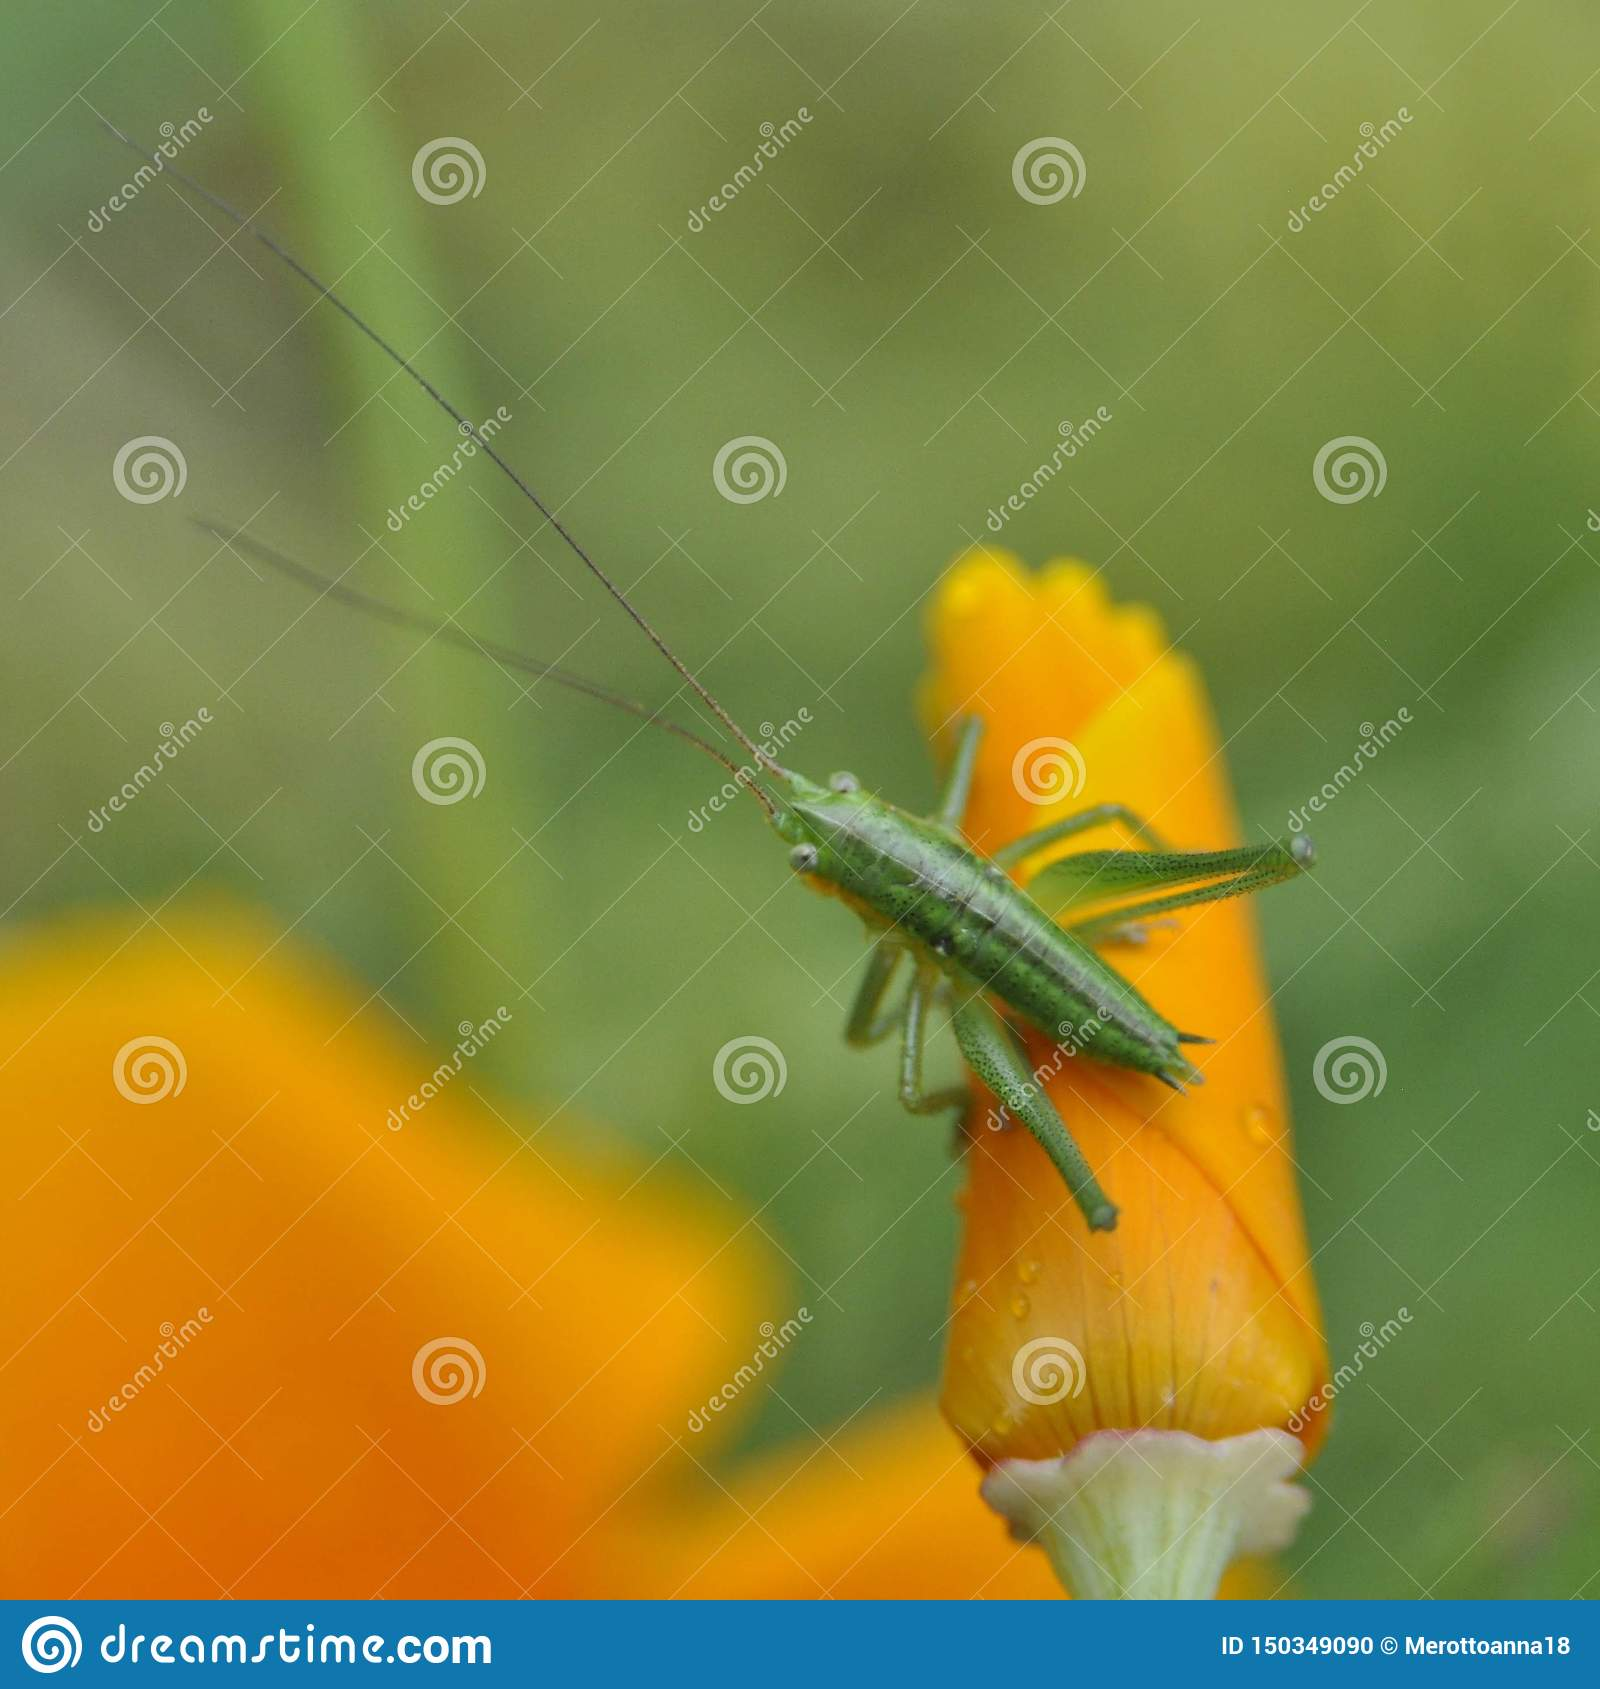 Flower and a insect